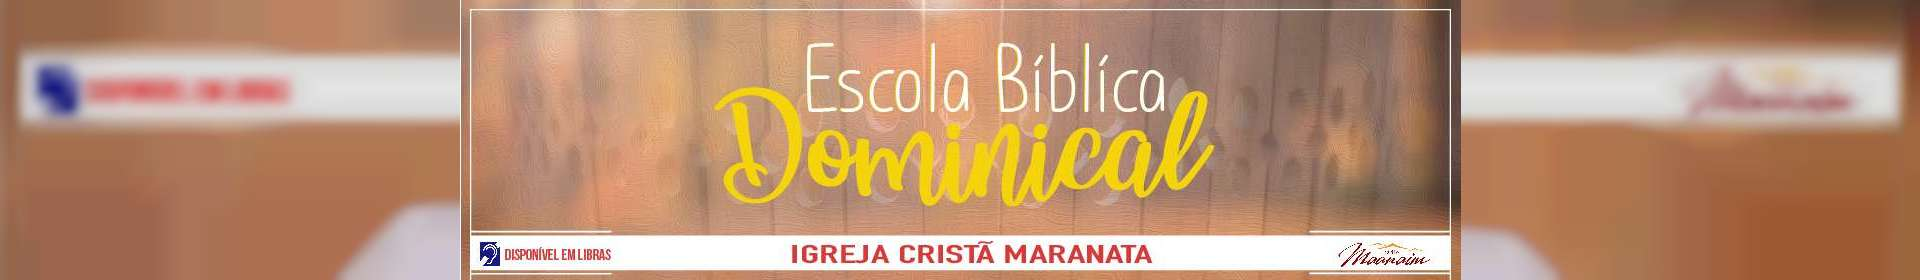 Escola Bíblica Dominical - 05/05/2019